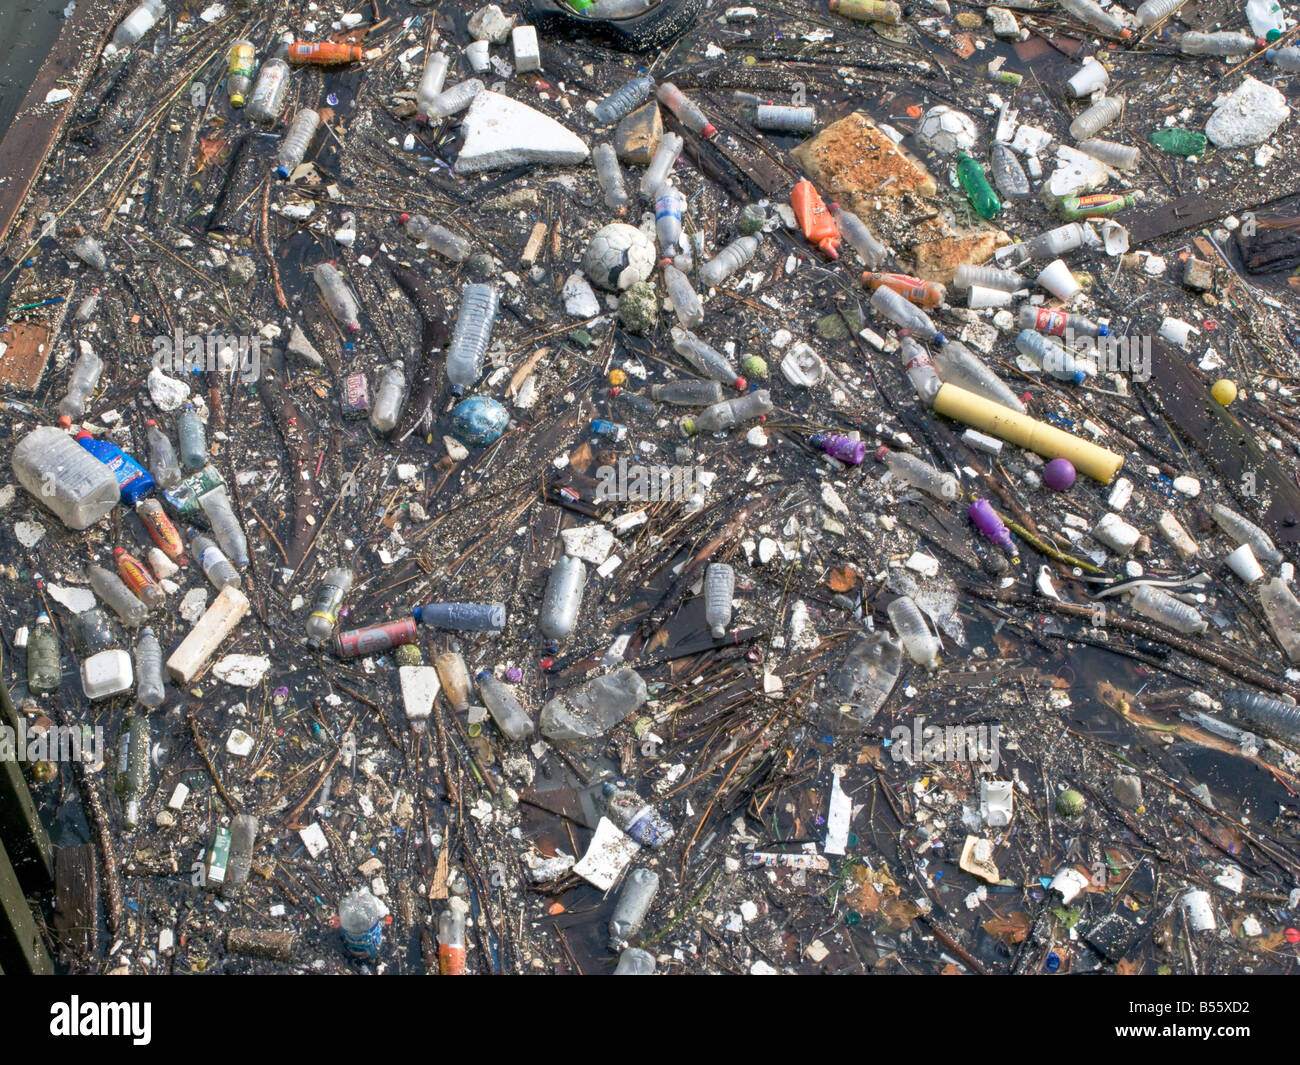 UK. Rubbish and pollution near Limehouse Basin by river Thames, London.Photo © Julio Etchart - Stock Image